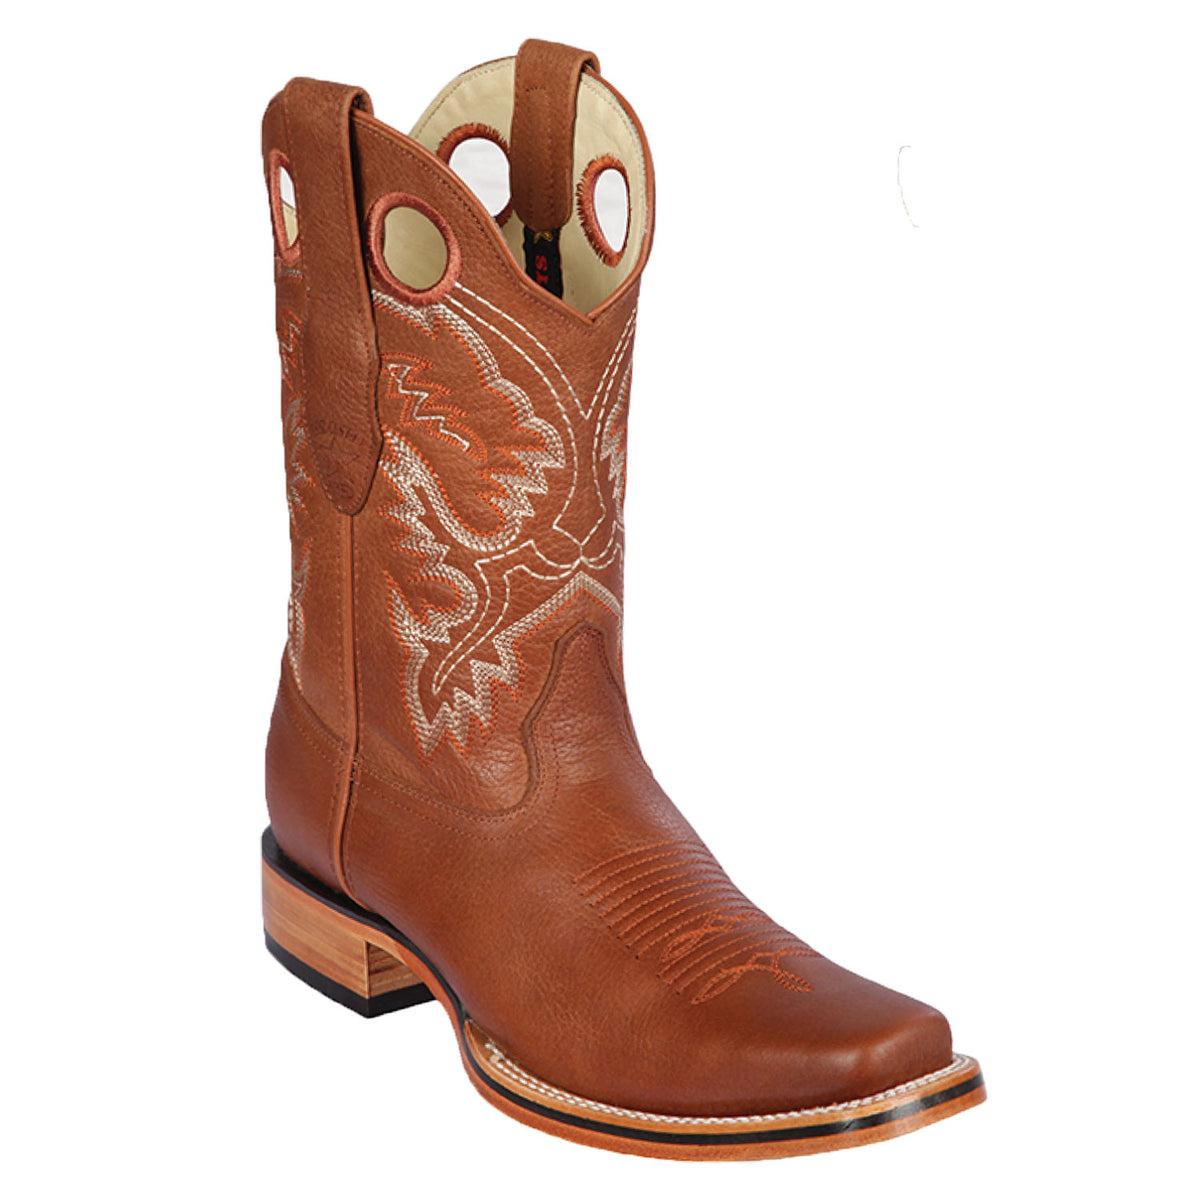 Genuine Leather Boot LAB-81227